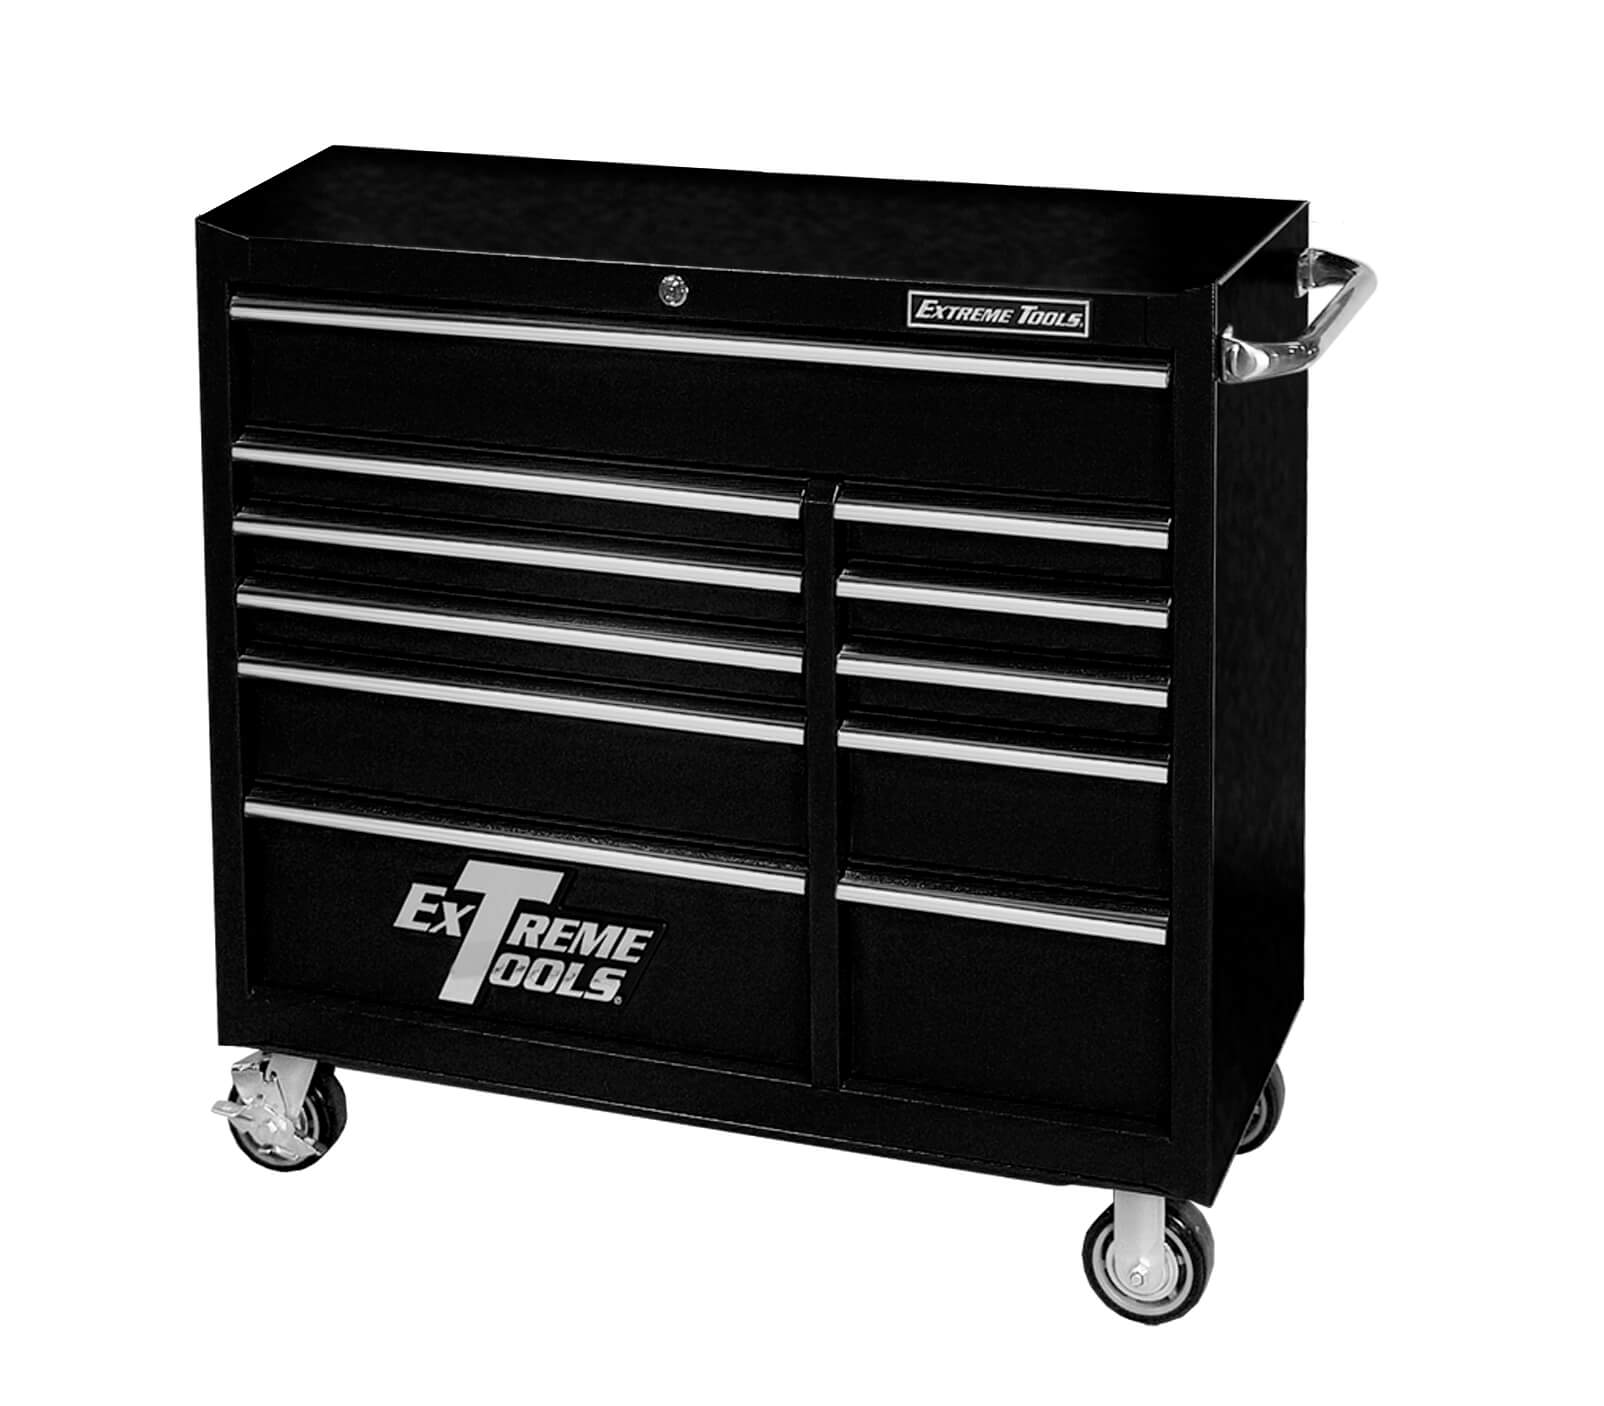 Extreme Tools 41 11 Drawer 24 Deep Roller Cabinet